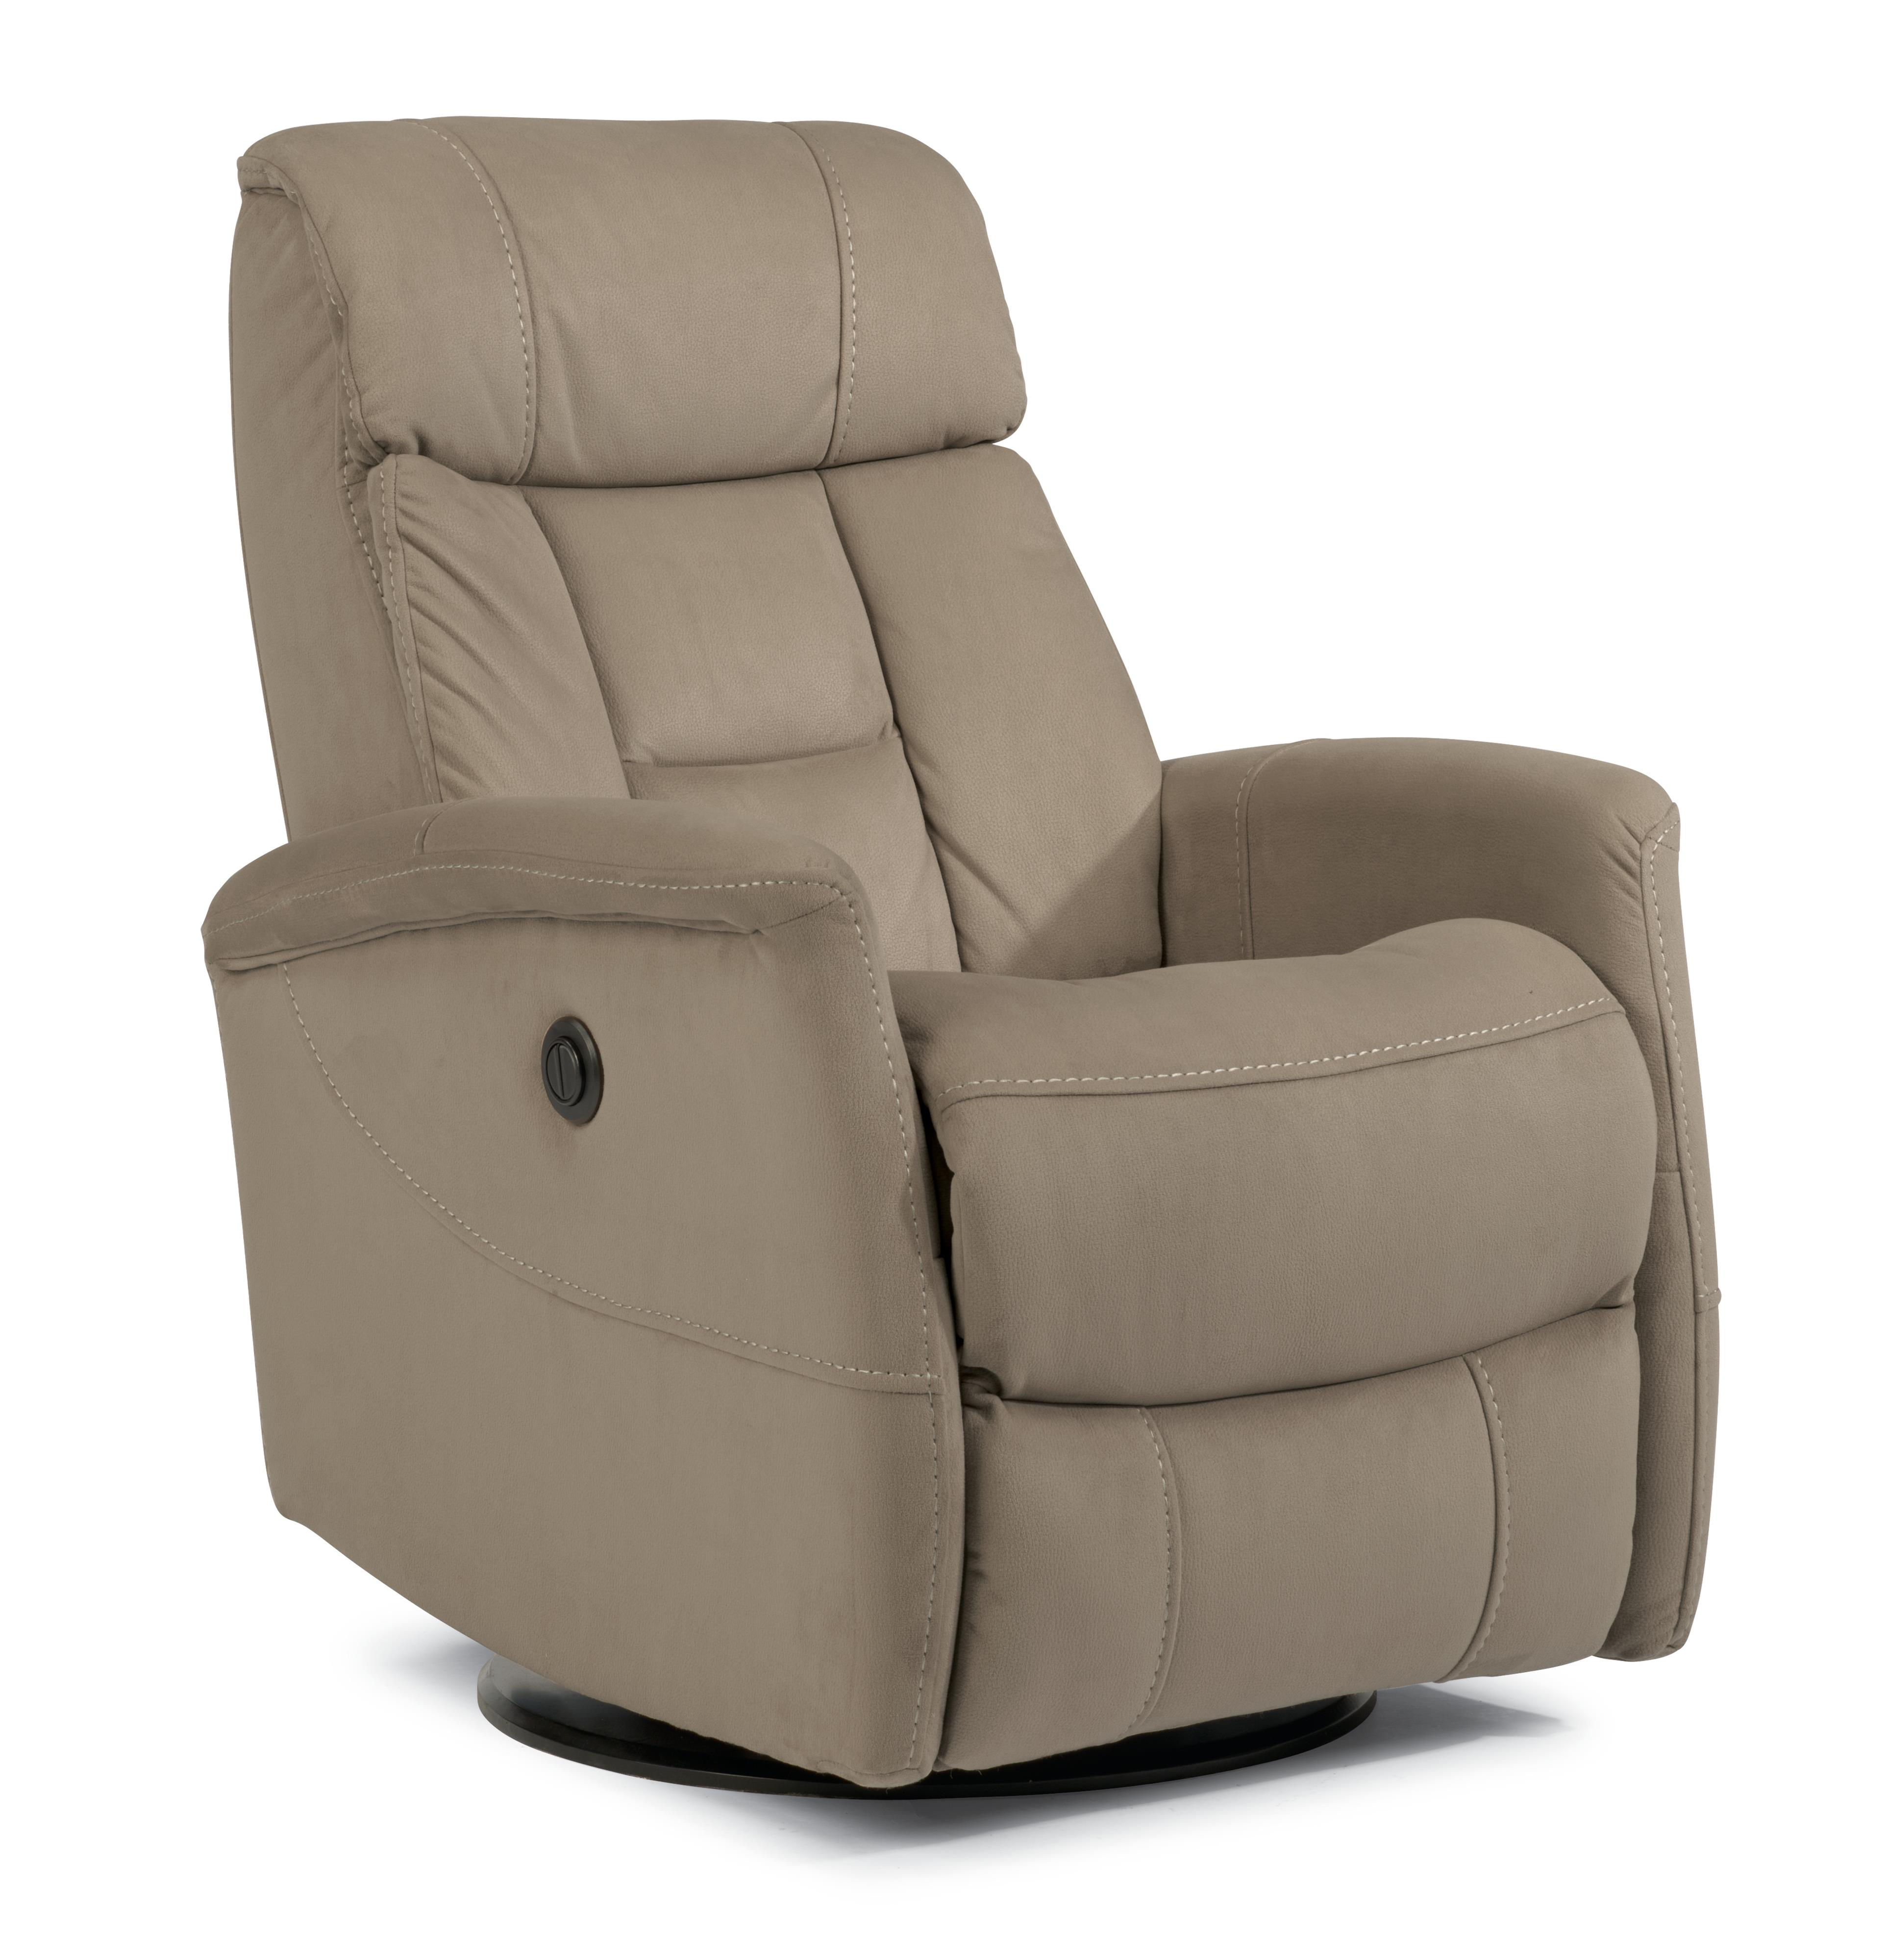 Flexsteel Latitudes Go Anywhere Recliners Hart Queen Size Power Swivel Glider Recliner - Item Number: 1390-53PQ-942-12